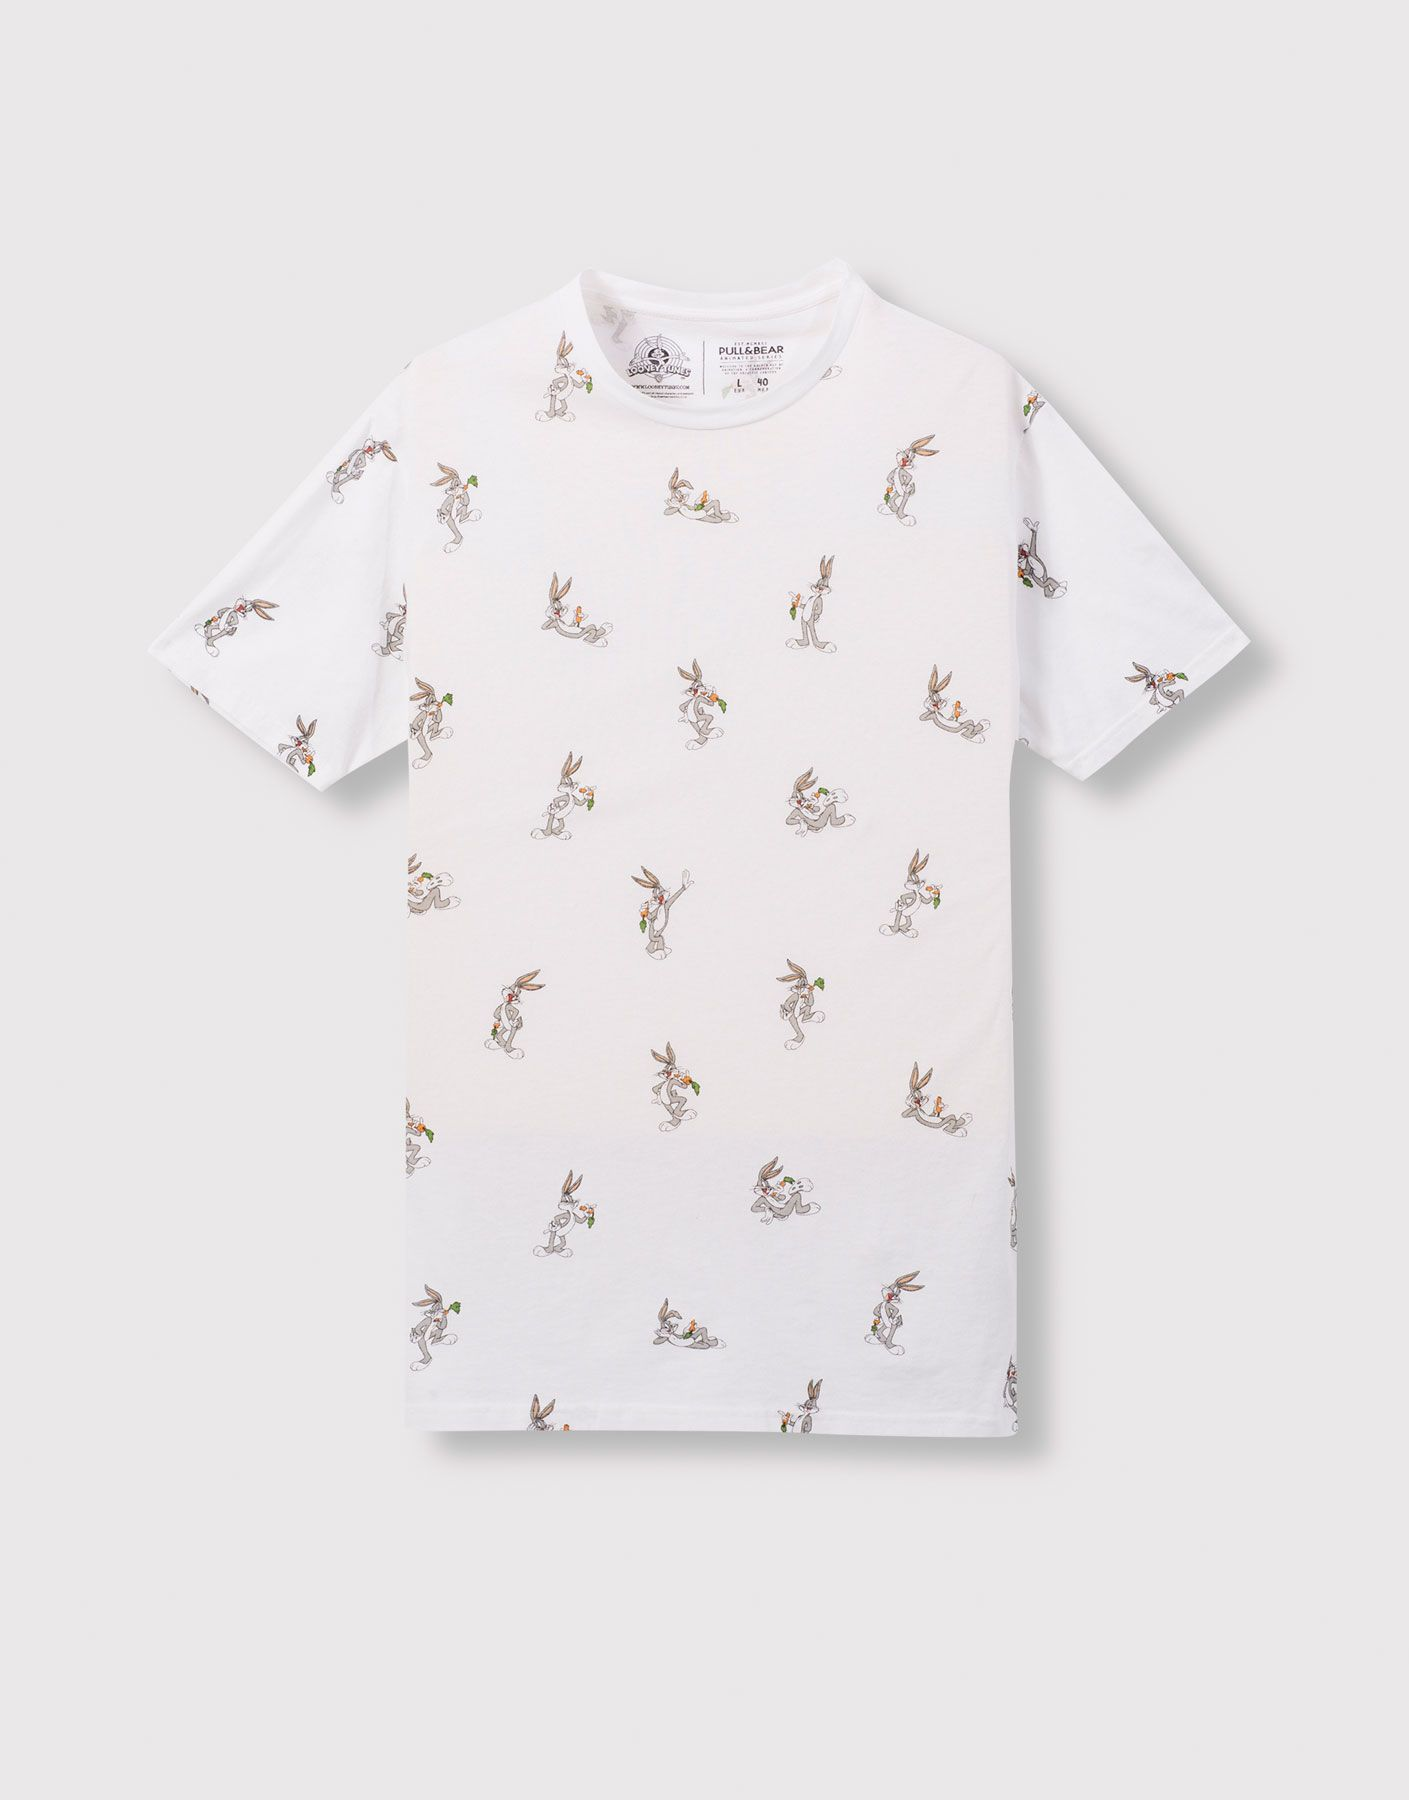 e09628a5c ALL OVER LOONEY TUNES PRINT T-SHIRT - T-SHIRTS AND POLO SHIRTS - MAN -  PULL&BEAR Indonesia